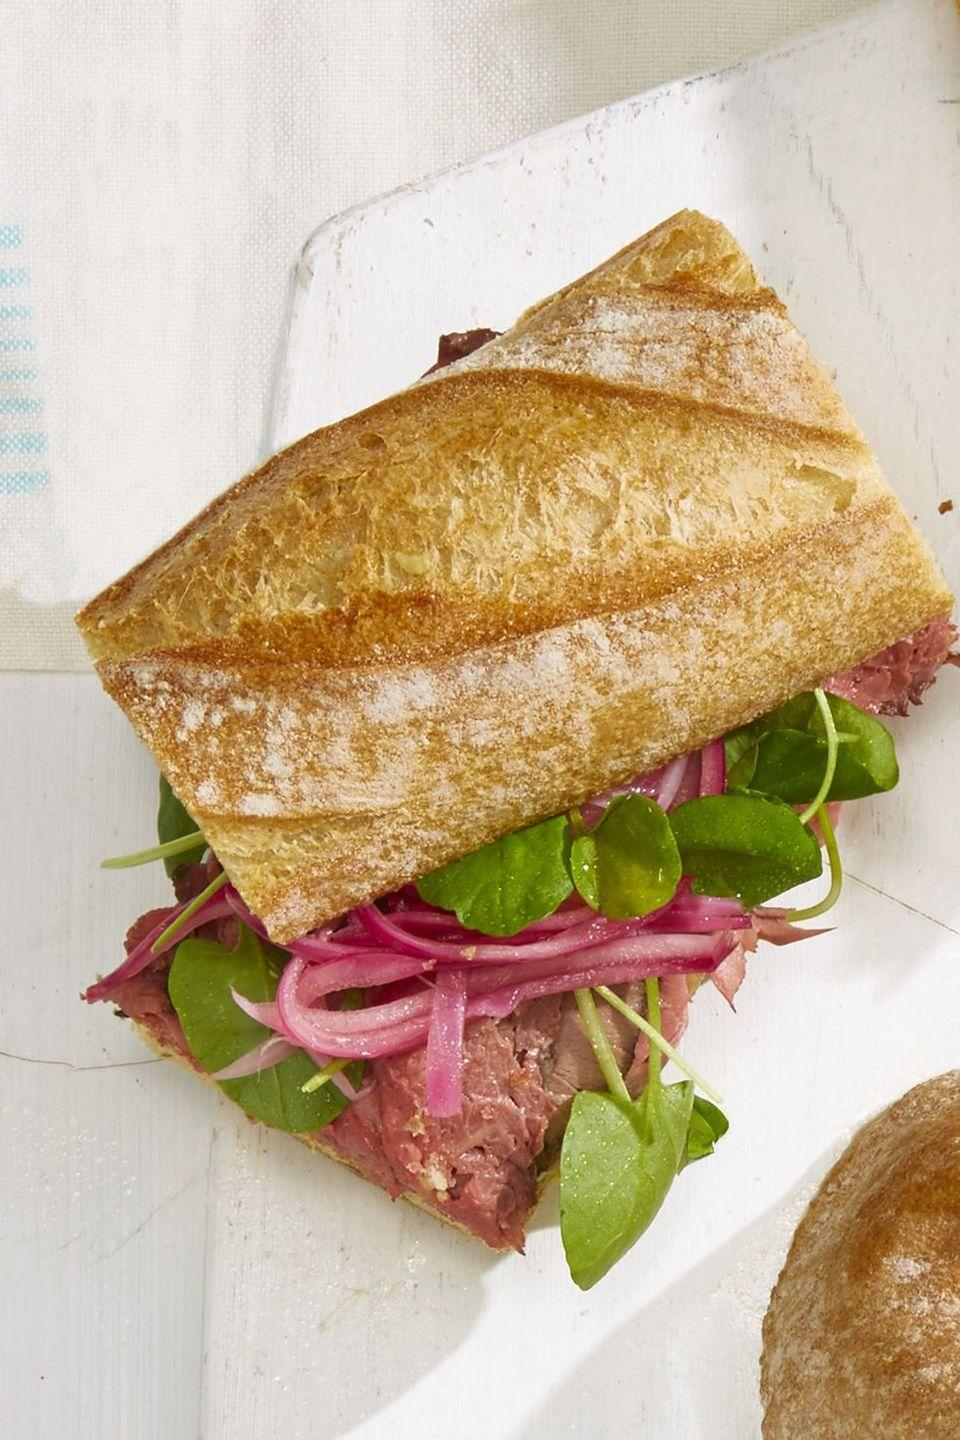 """<p>Pickled onions, prepared horseradish, and Dijon mustard lend tons of flavor to this hearty sandwich. You don't even need cheese.</p><p><em><a href=""""https://www.goodhousekeeping.com/food-recipes/a21731209/roast-beef-baguette-recipe/"""" rel=""""nofollow noopener"""" target=""""_blank"""" data-ylk=""""slk:Get the recipe for Roast Beef Baguette »"""" class=""""link rapid-noclick-resp"""">Get the recipe for Roast Beef Baguette »</a></em></p>"""